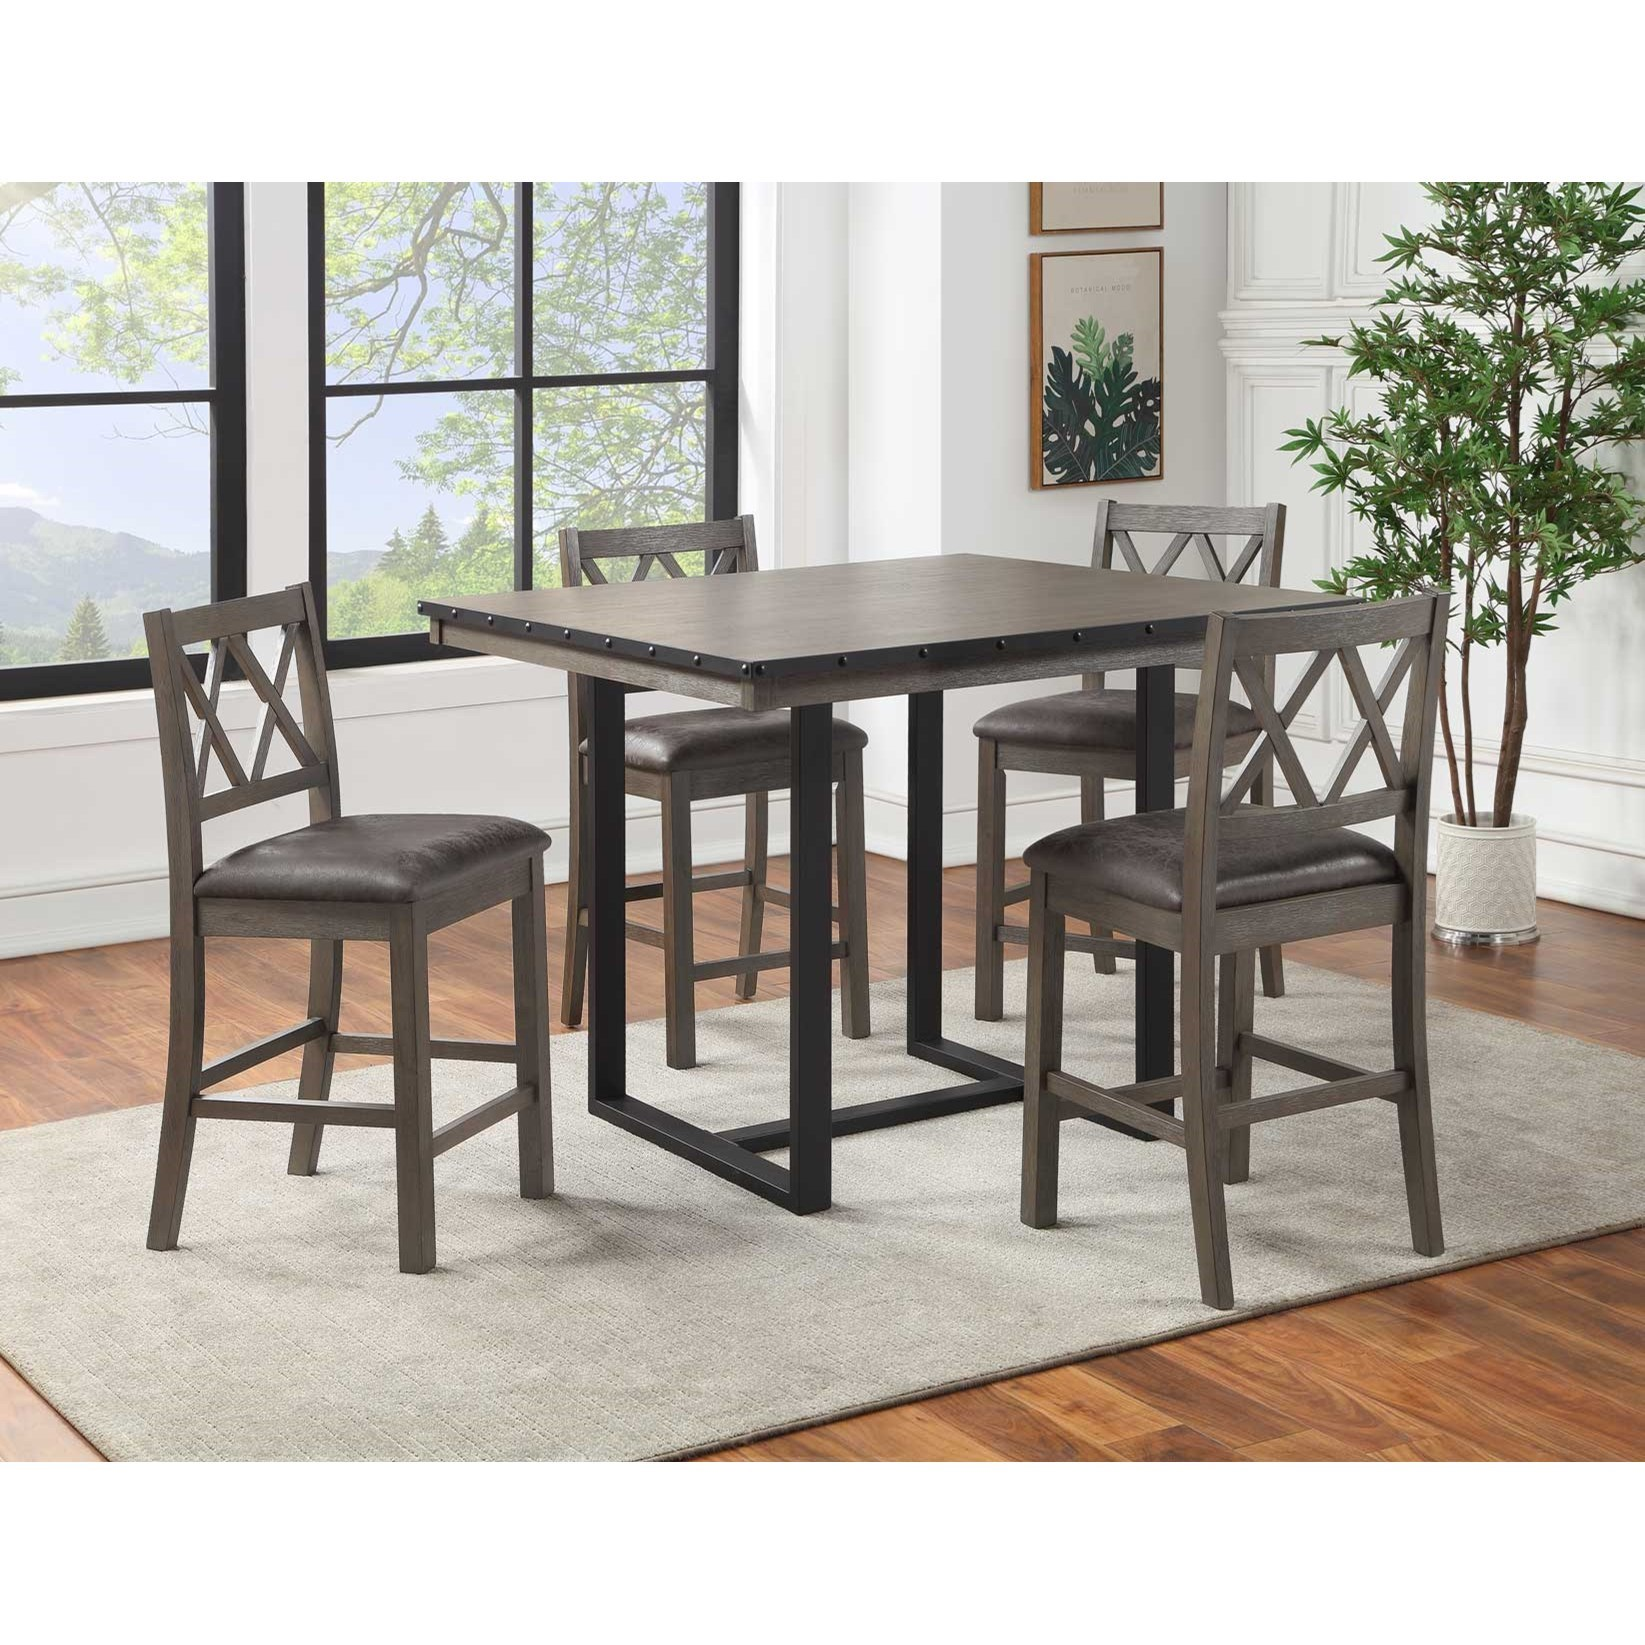 Lori 5-Piece Counter Dining Set by Steve Silver at Northeast Factory Direct